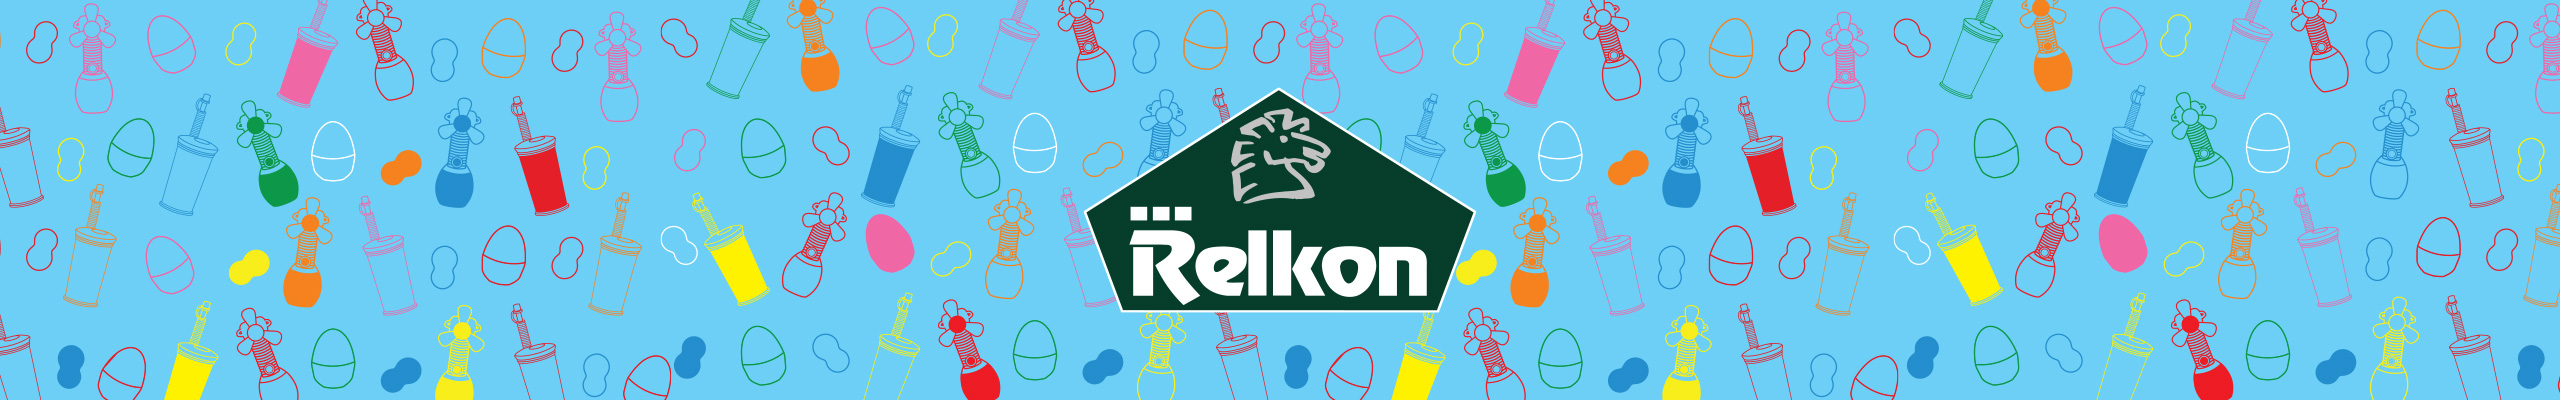 Relkon Promotional Stands